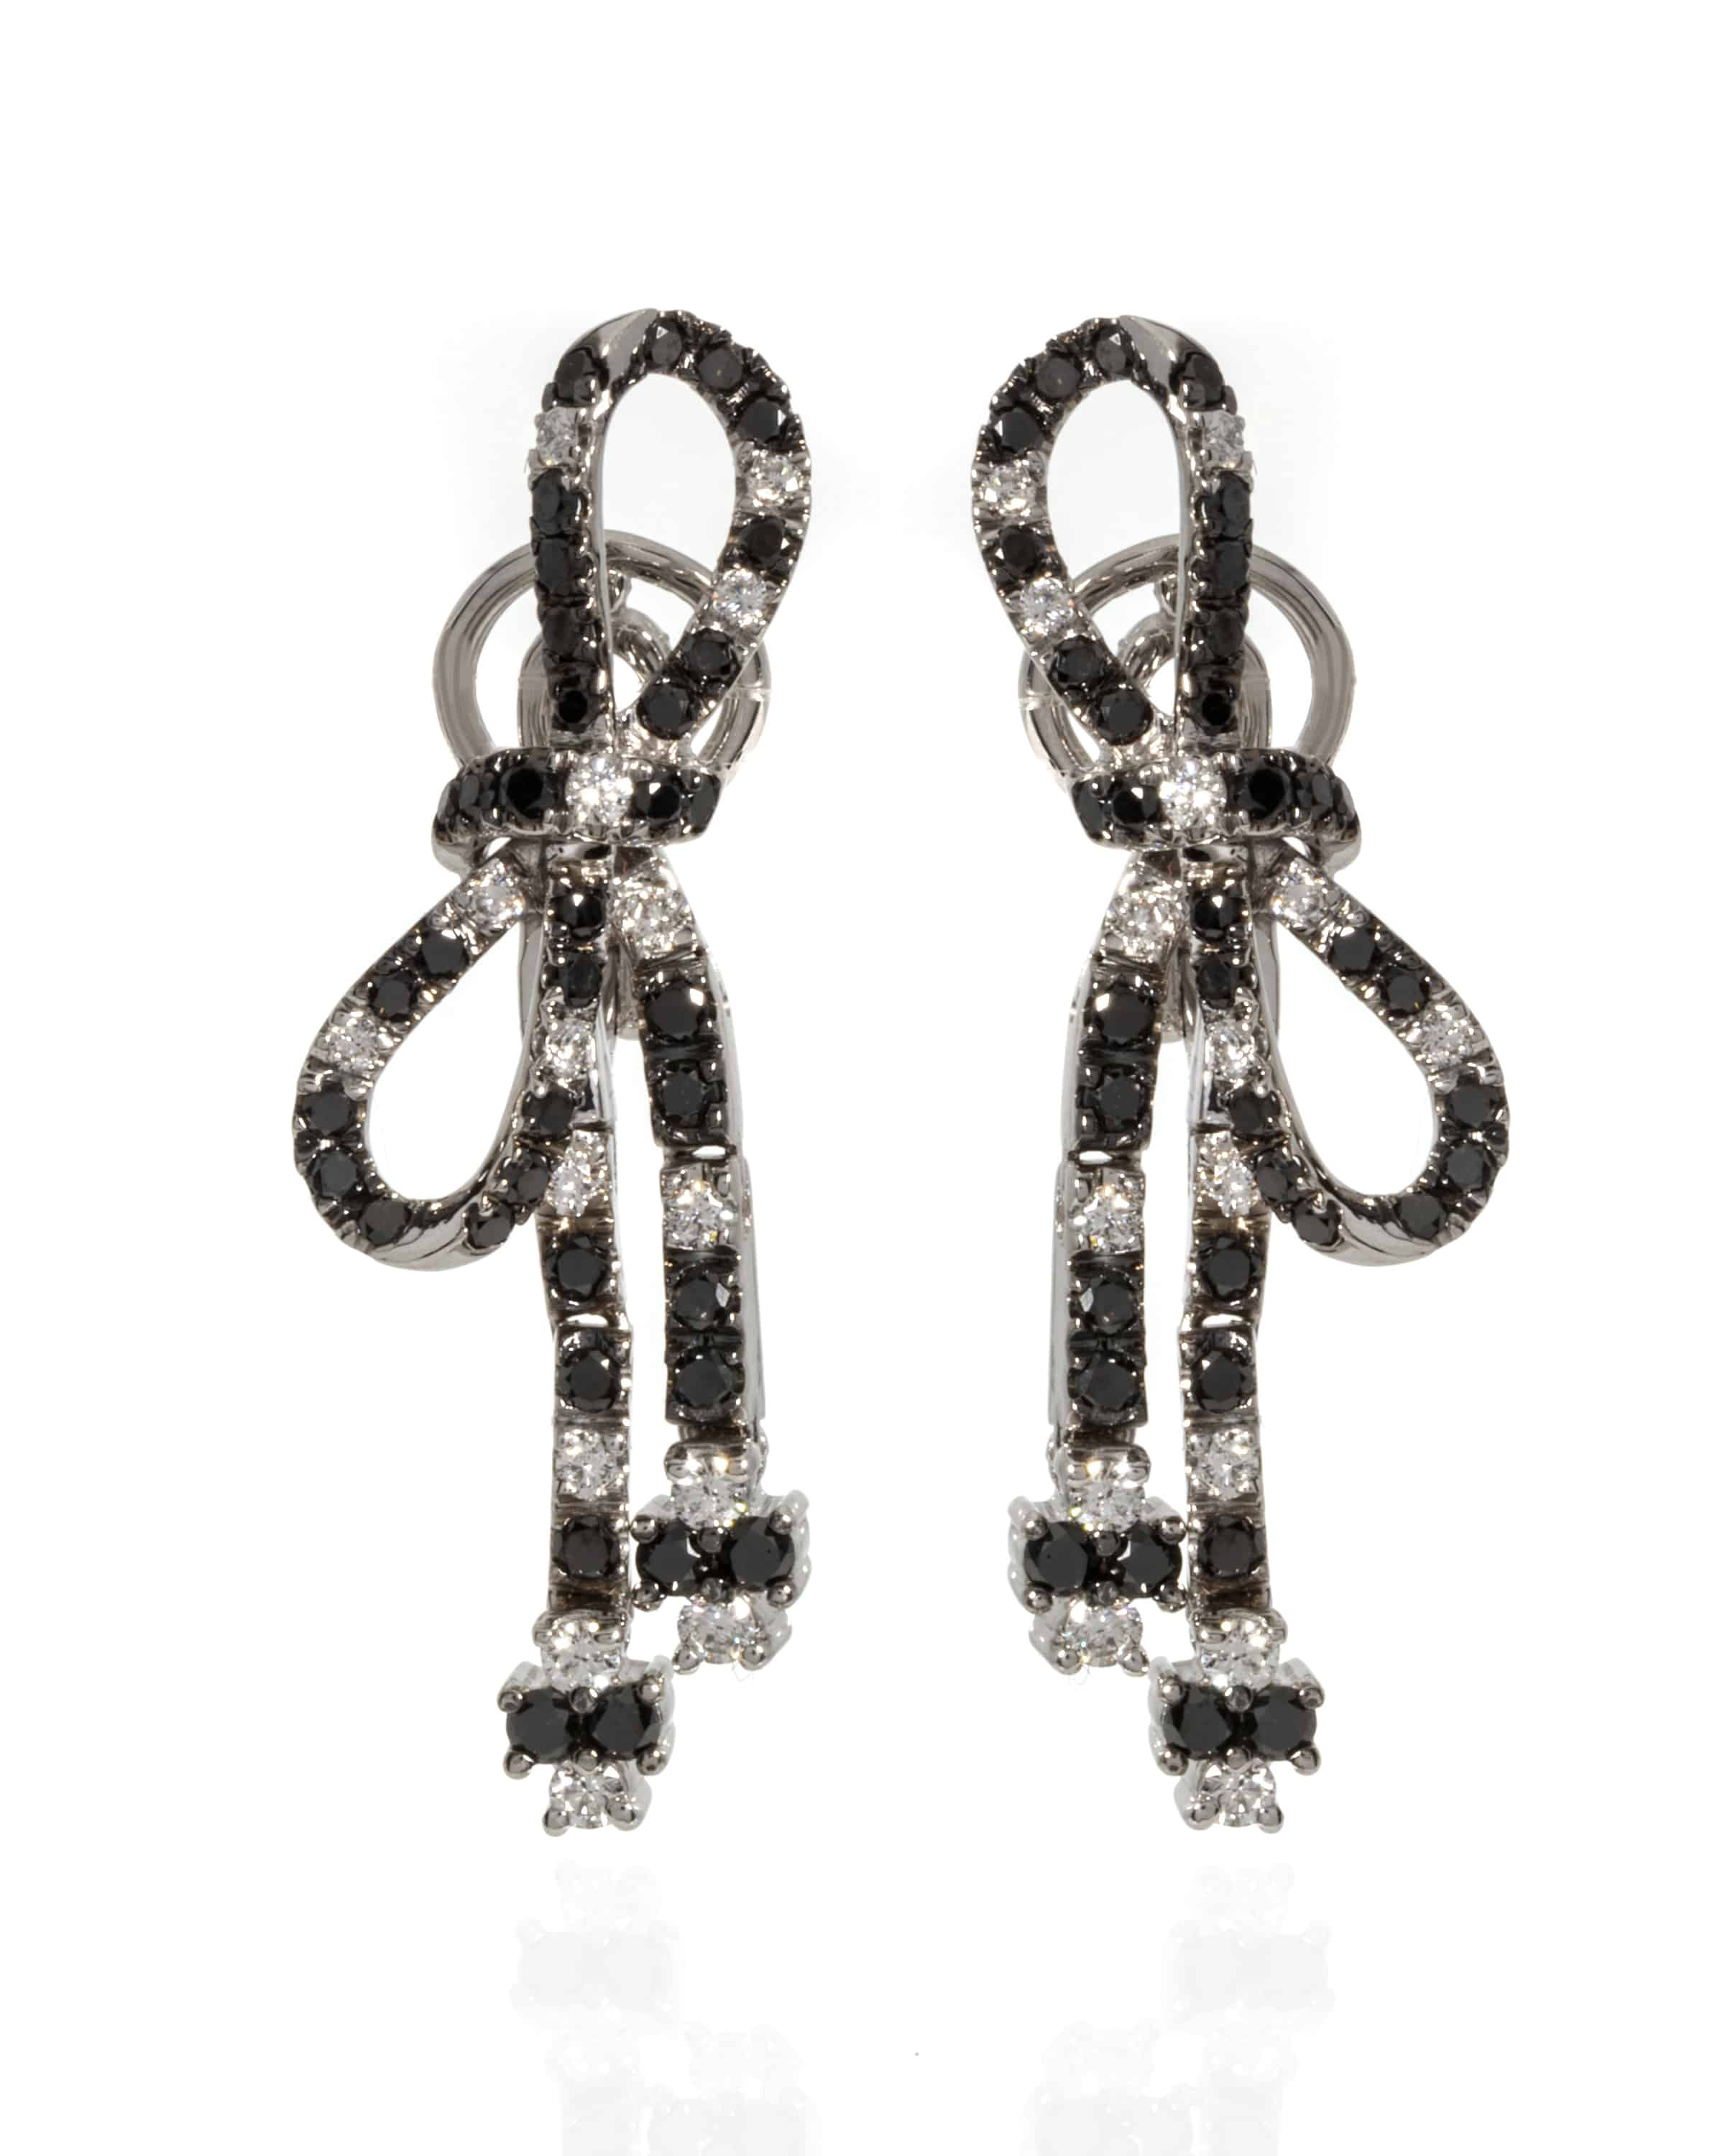 Crivelli 18k White Gold Diamond Drop Earrings 166-1769 - 02926130